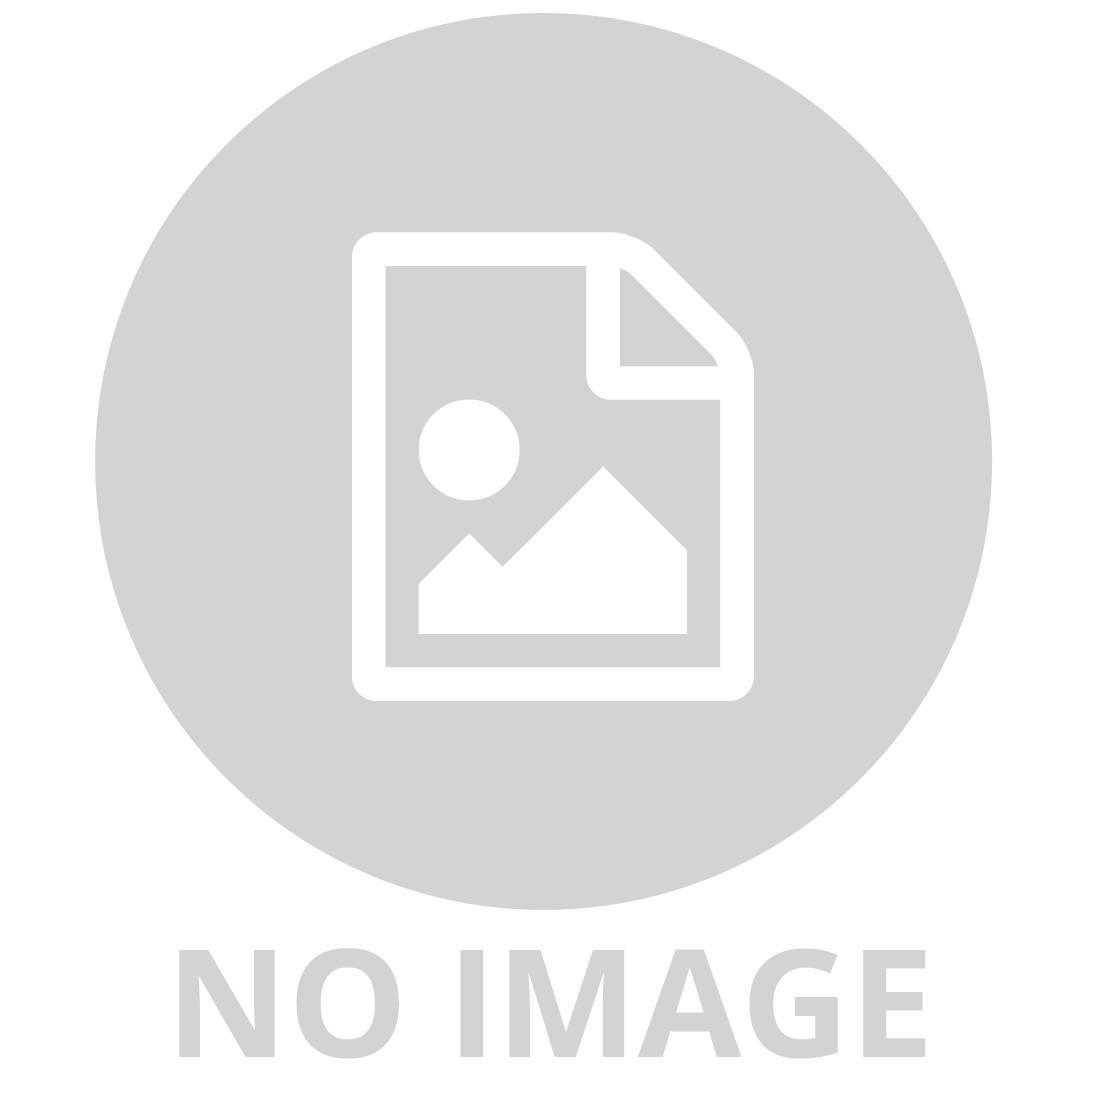 BMX/SKATE HELMET ORANGE CRUSH 55 - 58